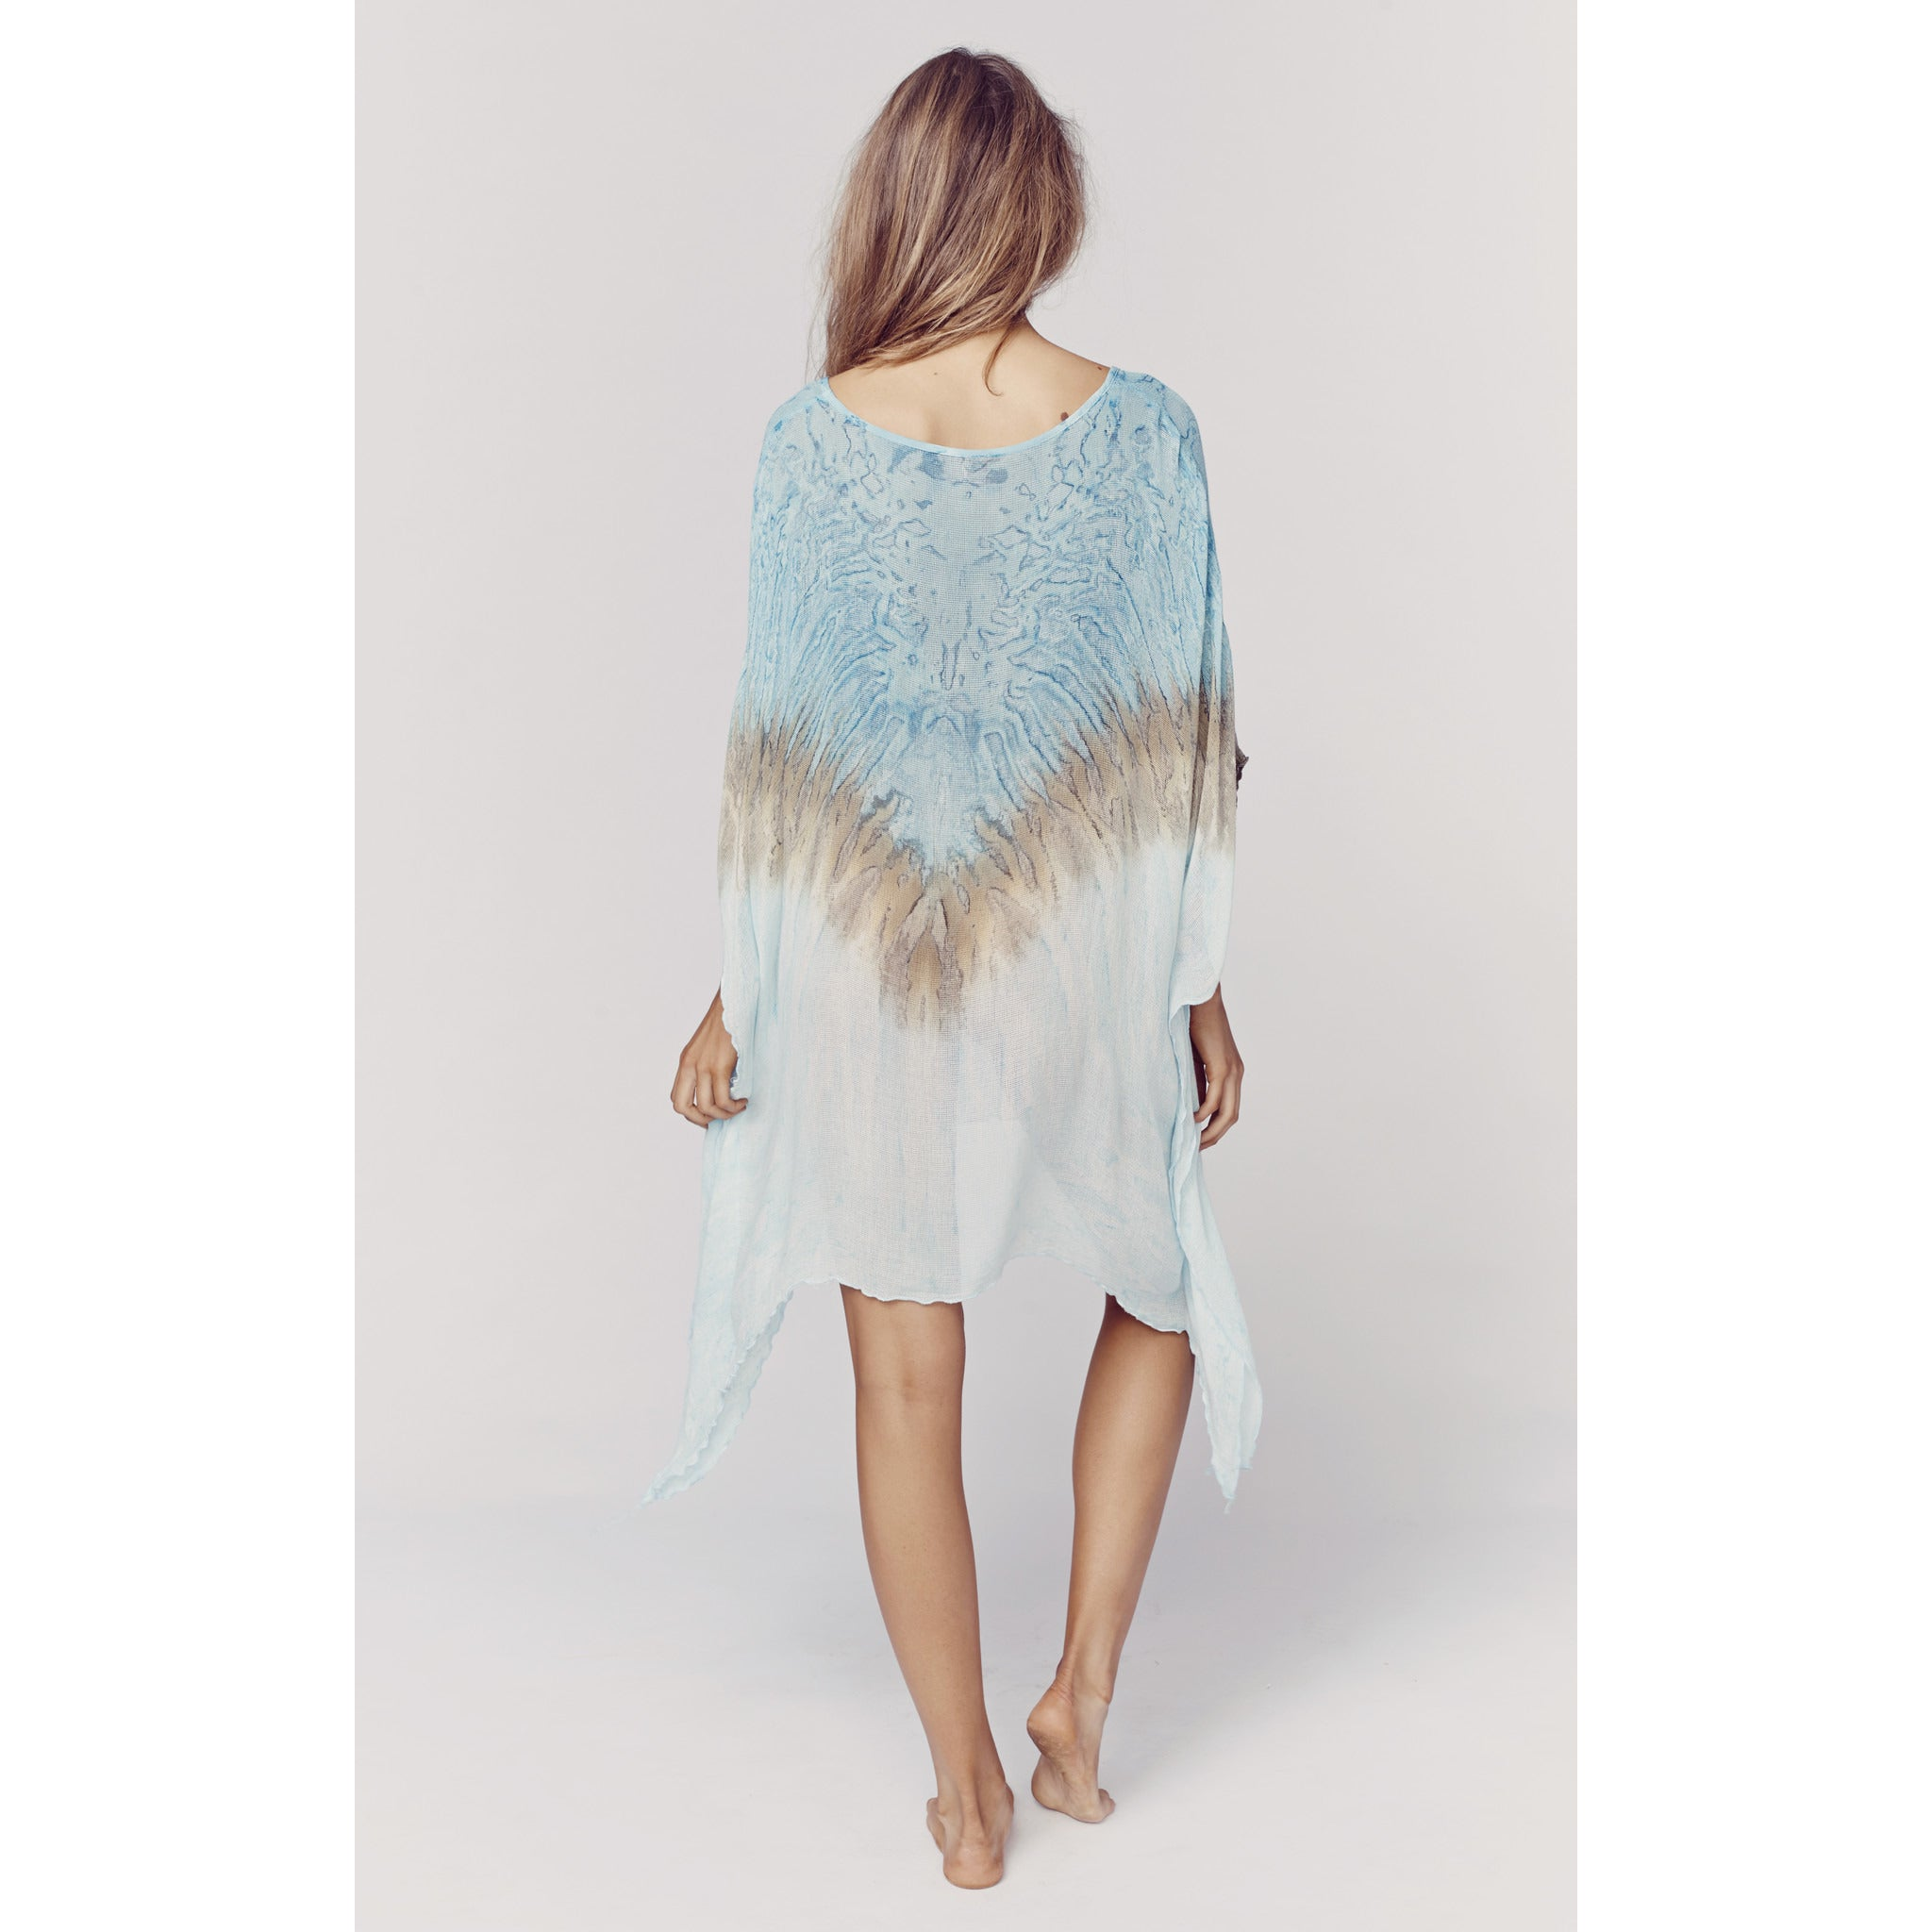 Neck Cape in Cool Blue Coral Reef